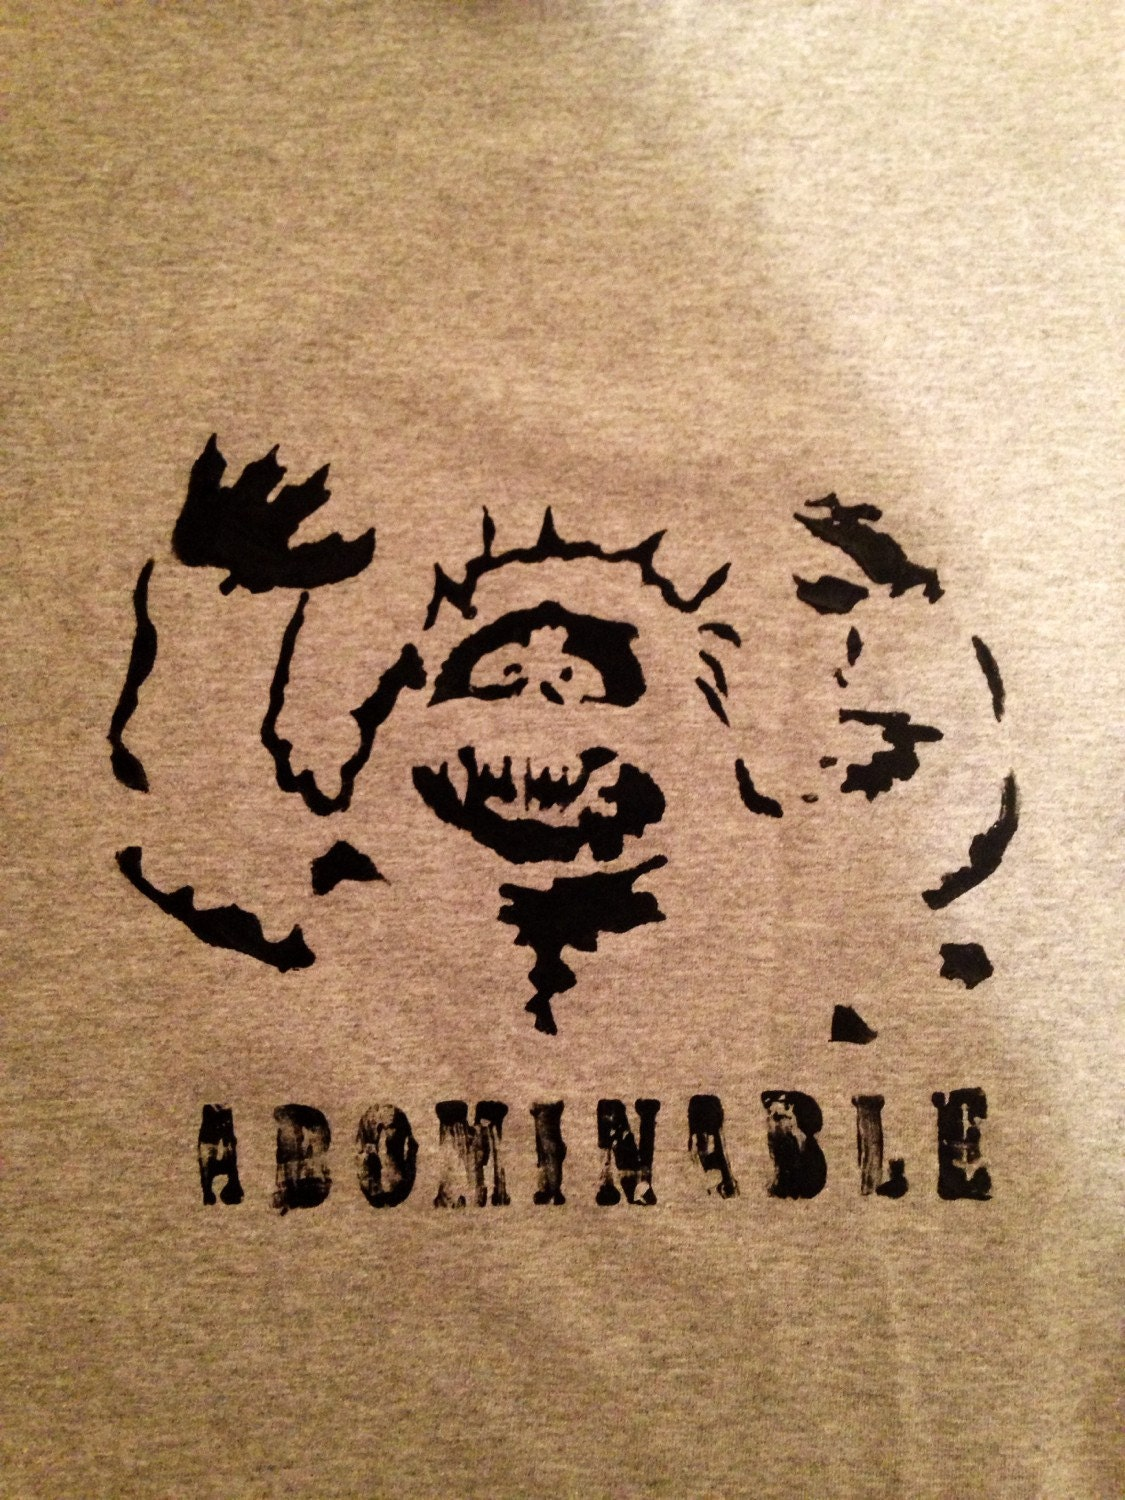 Rudolph the Red-Nosed Reindeer Abominable by BangYoureDeadTshirts